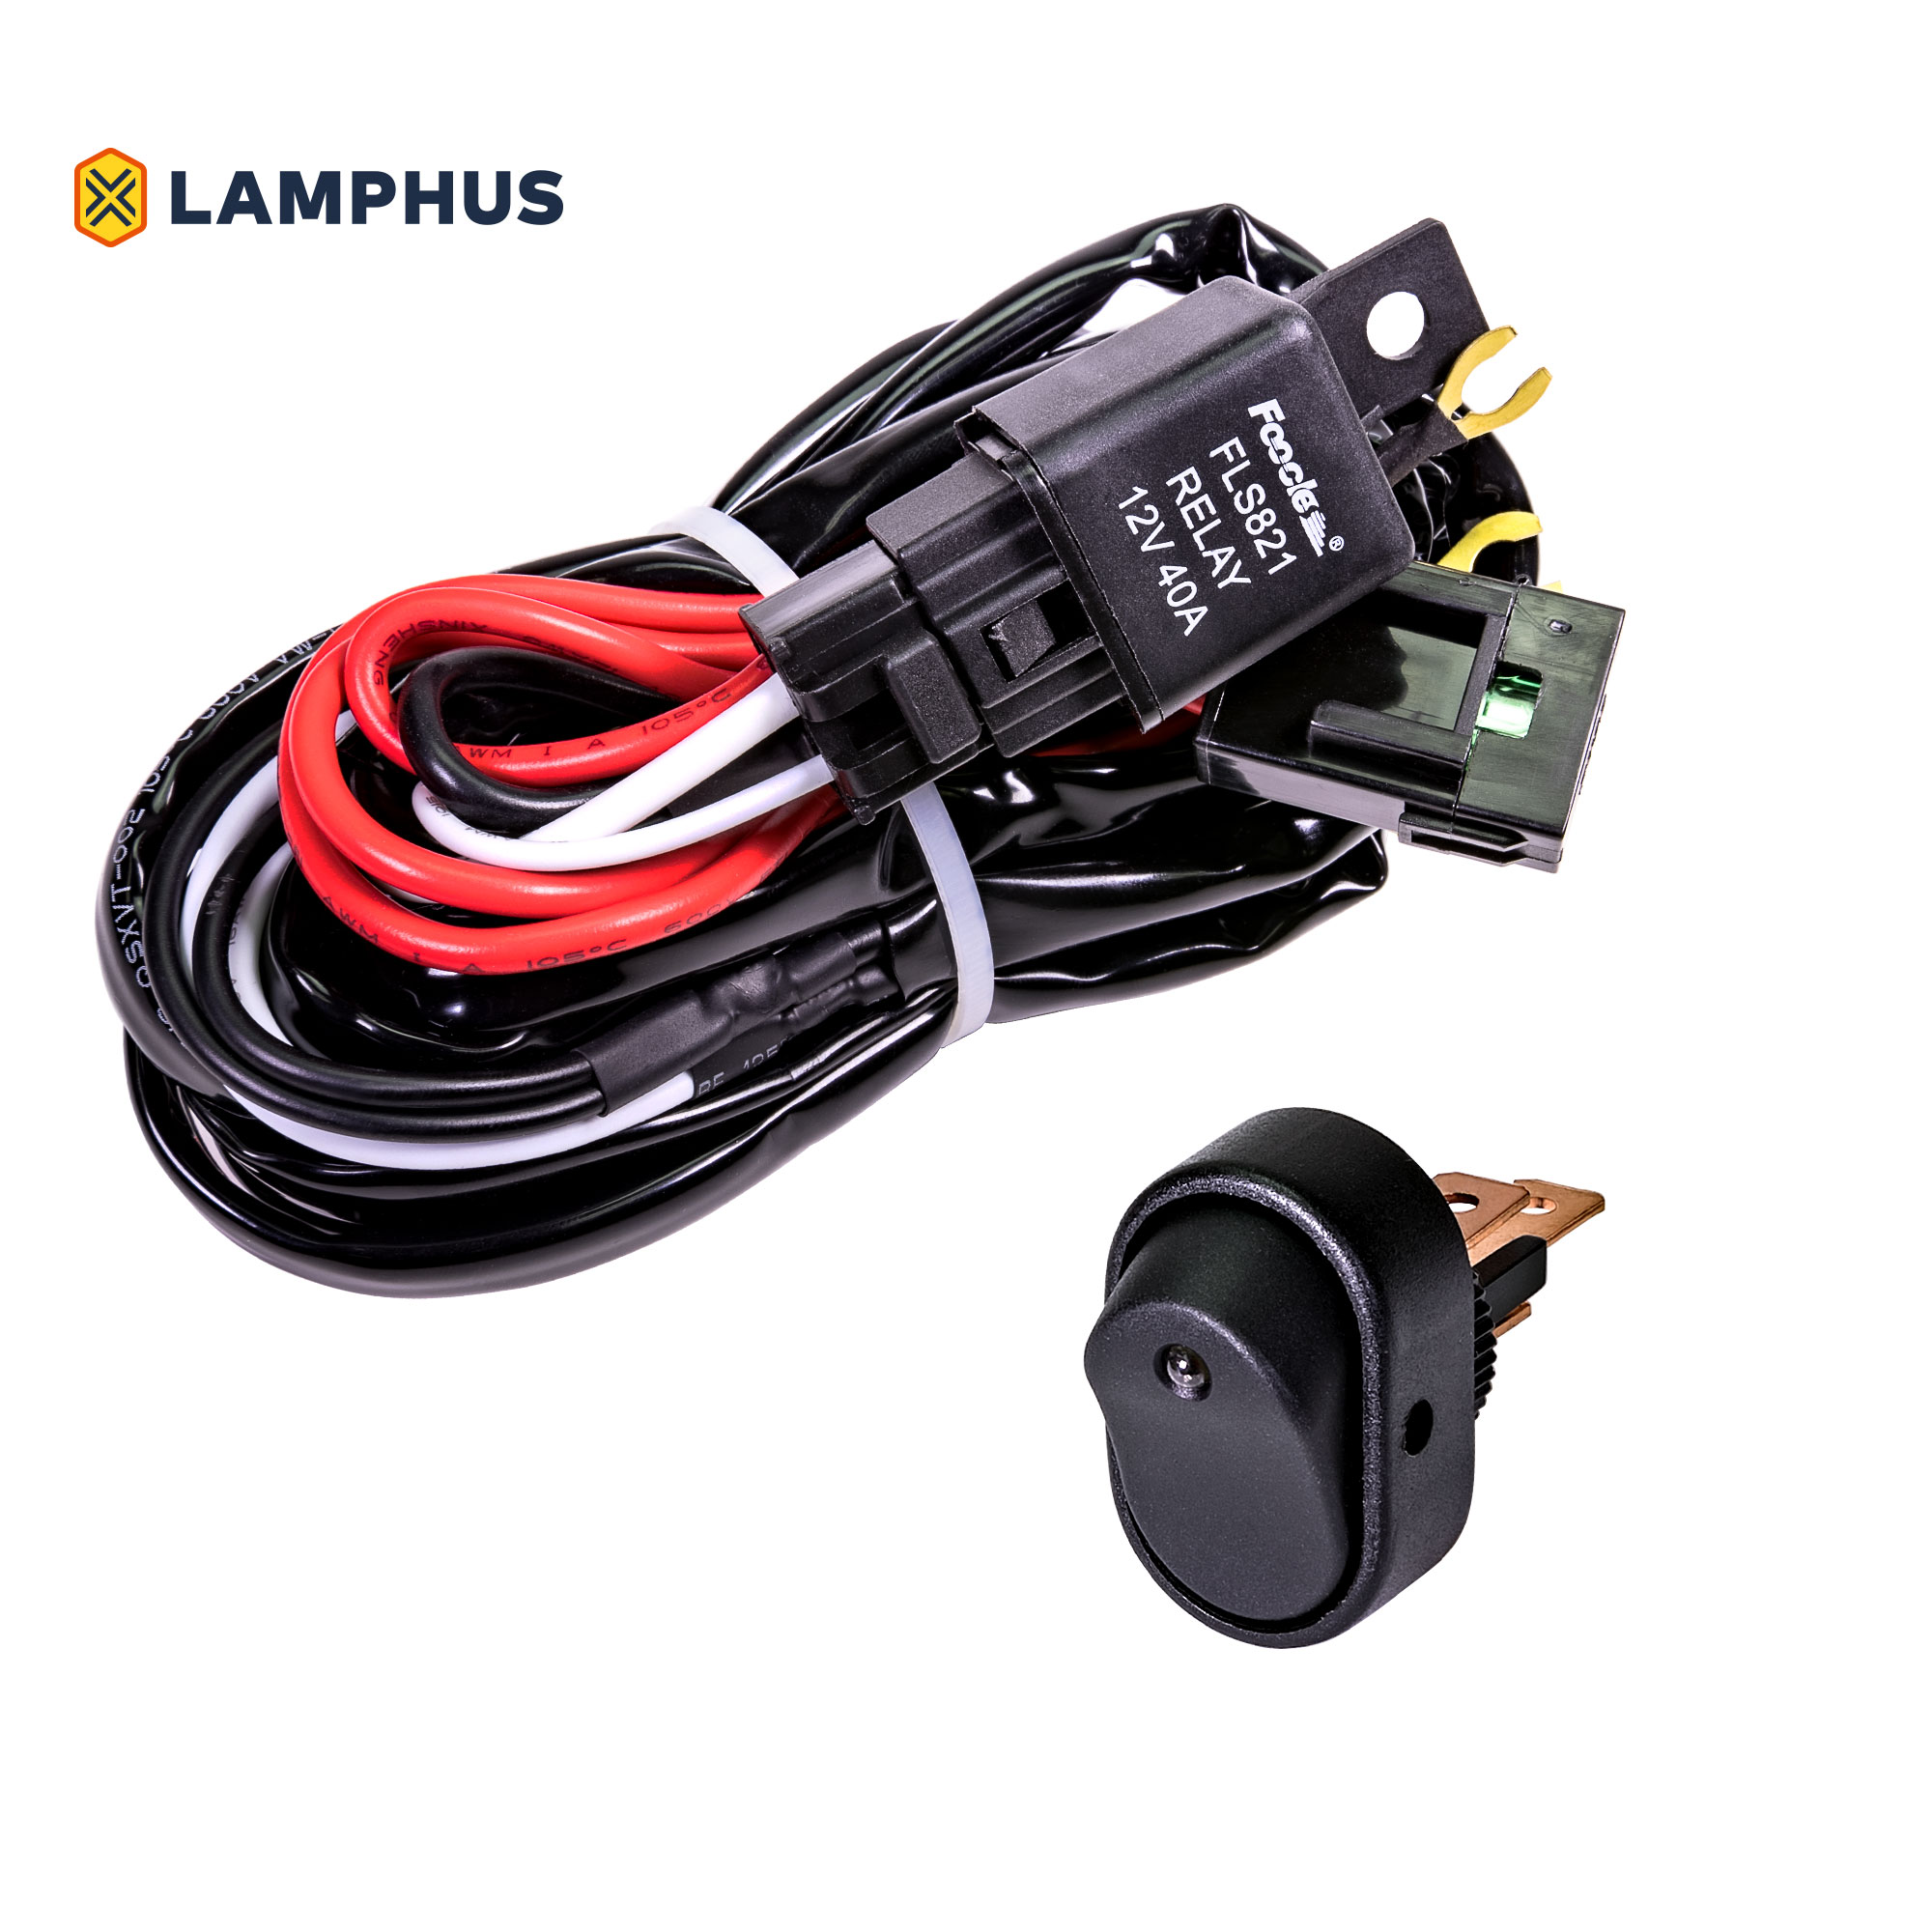 LAMPHUS ORWH04 Off Road Light Bar Wiring Harness Set - AMBER Mini On/Off Switch